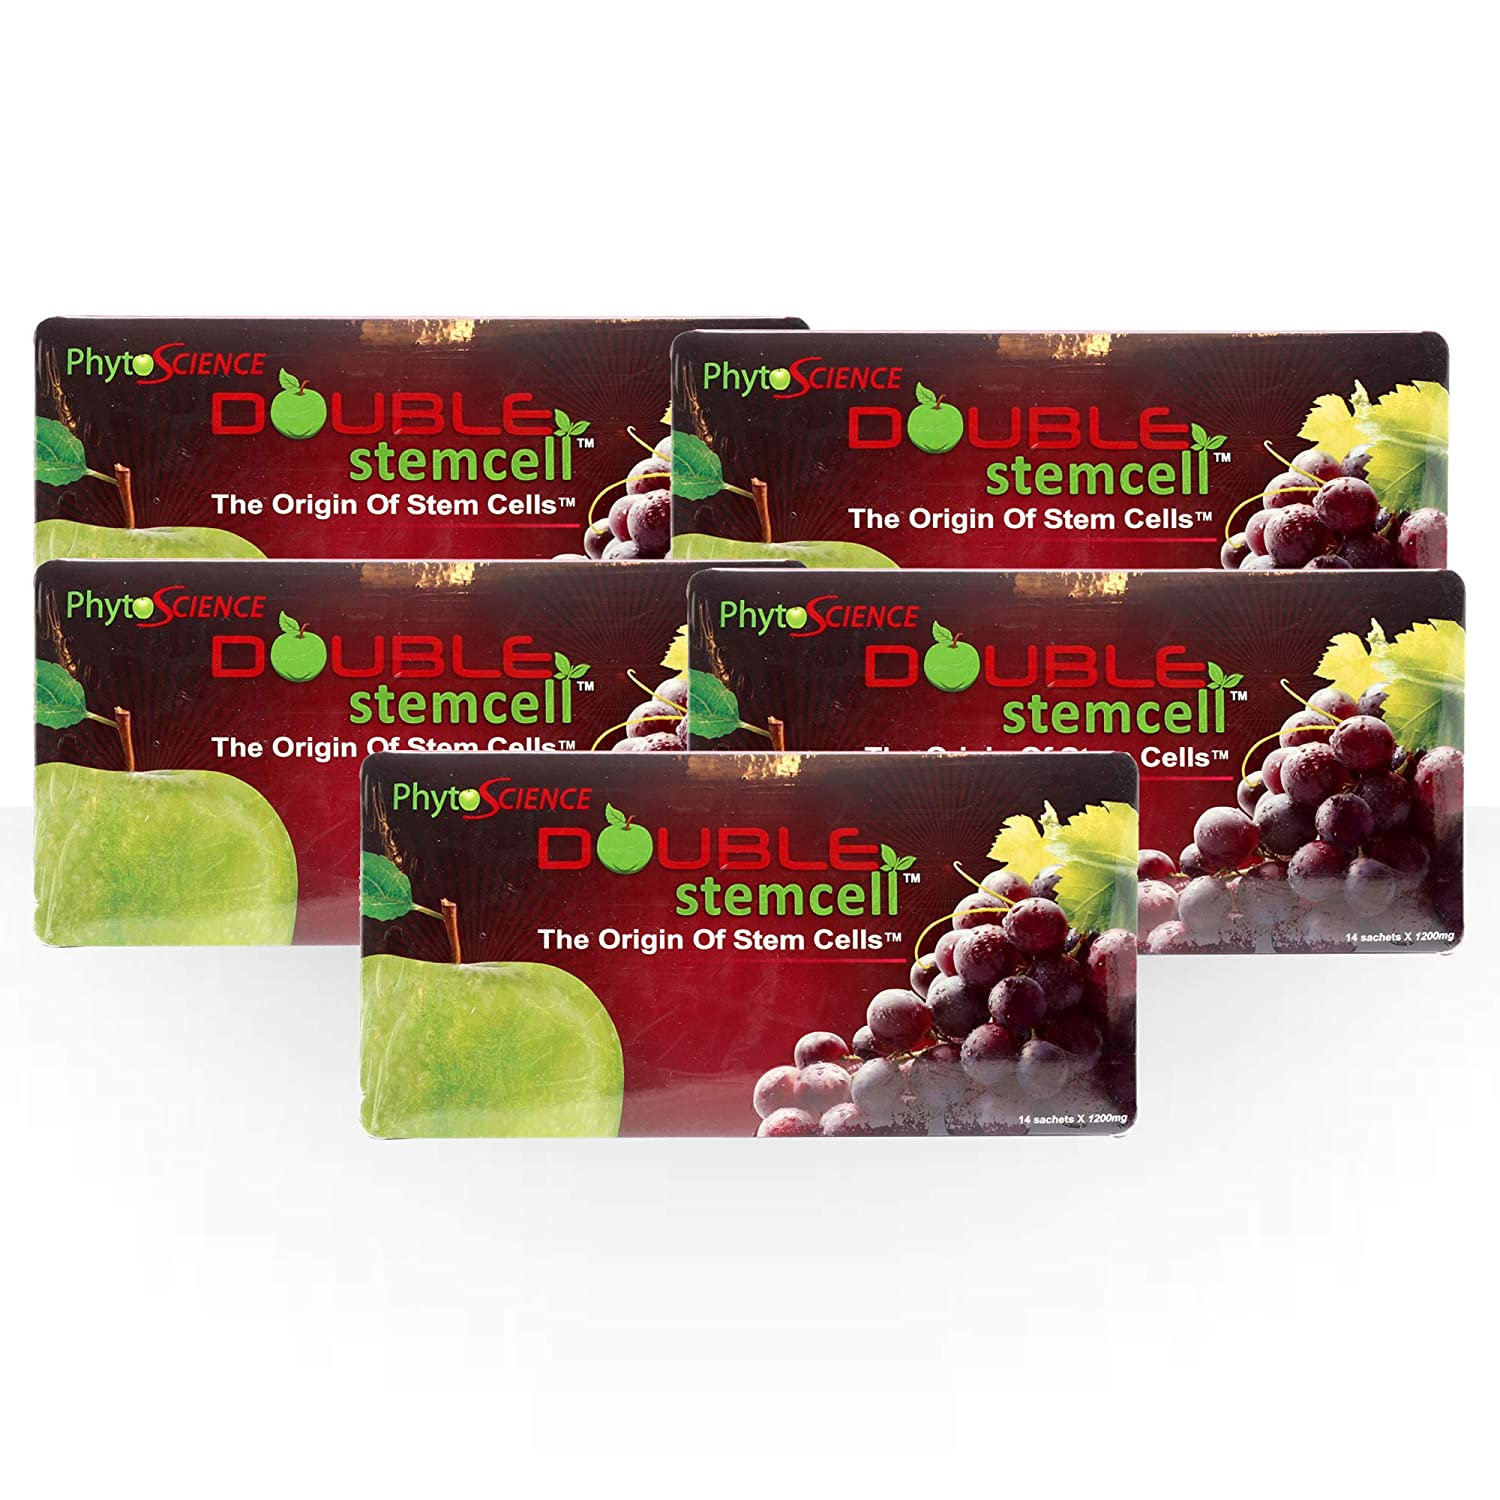 5 X Phytoscience Double Stemcell Best Anti Aging (Swiss Quality Formula)